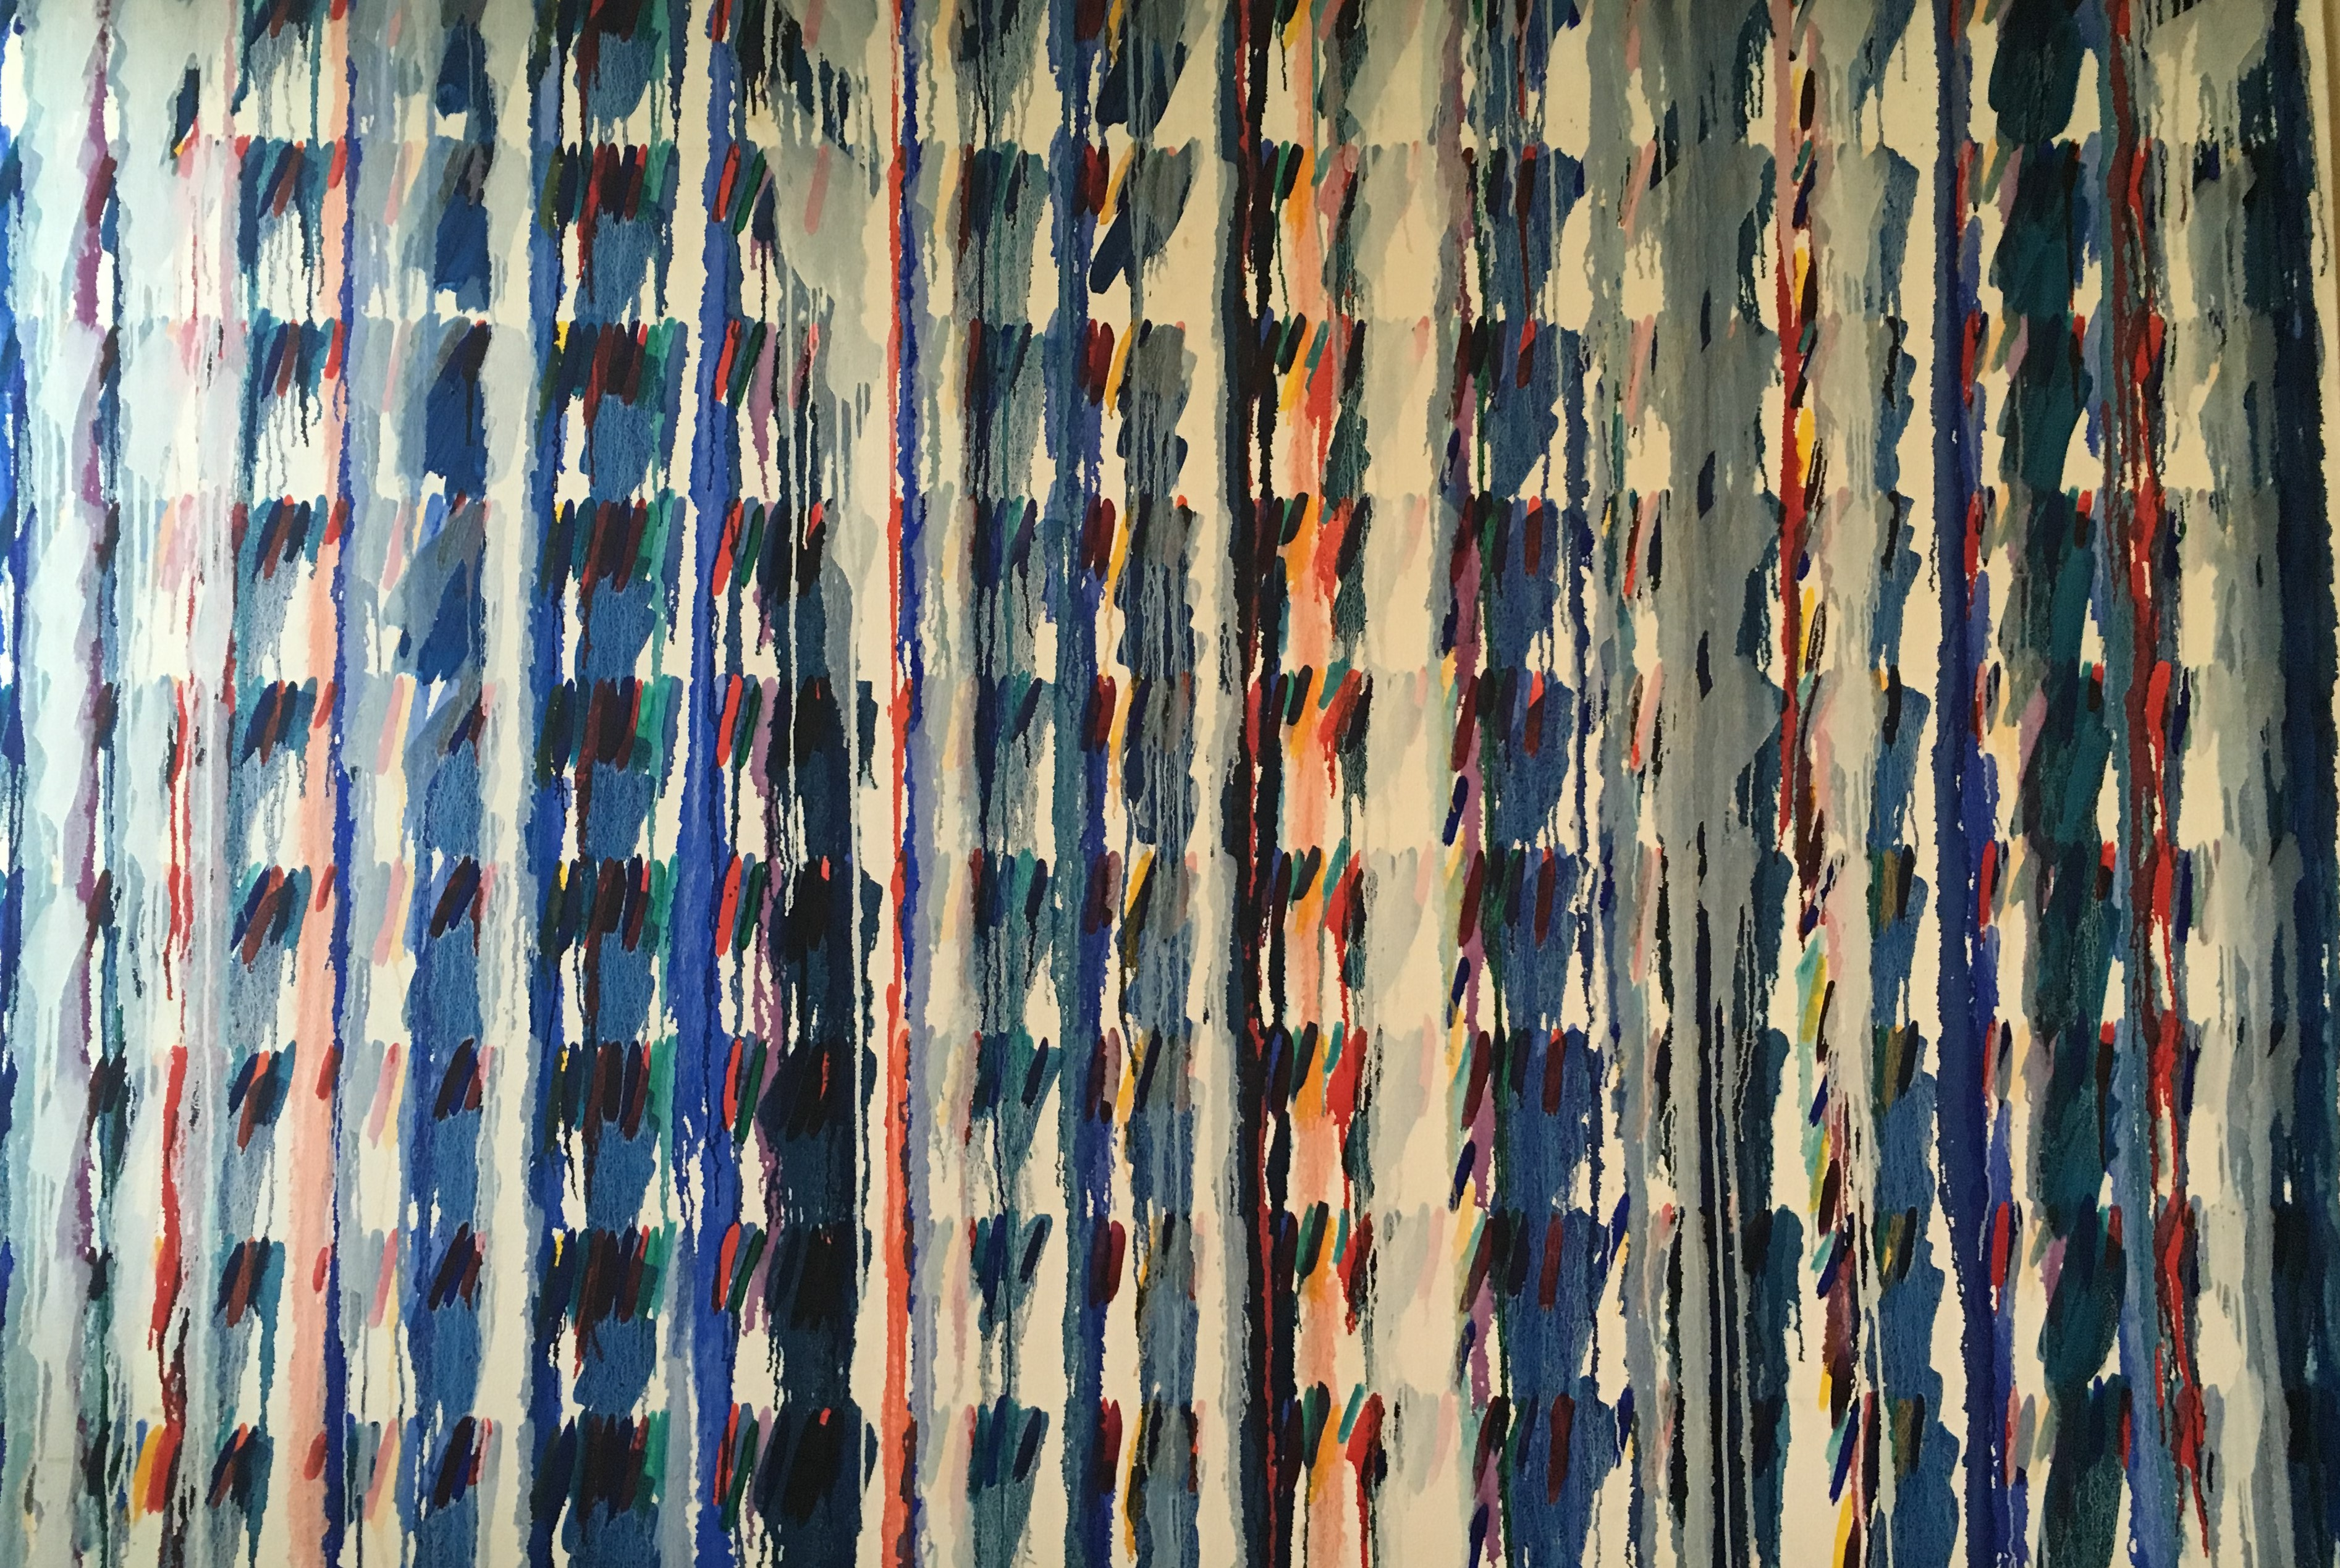 Falls artwork by Ann Thornycroft - art listed for sale on Artplode